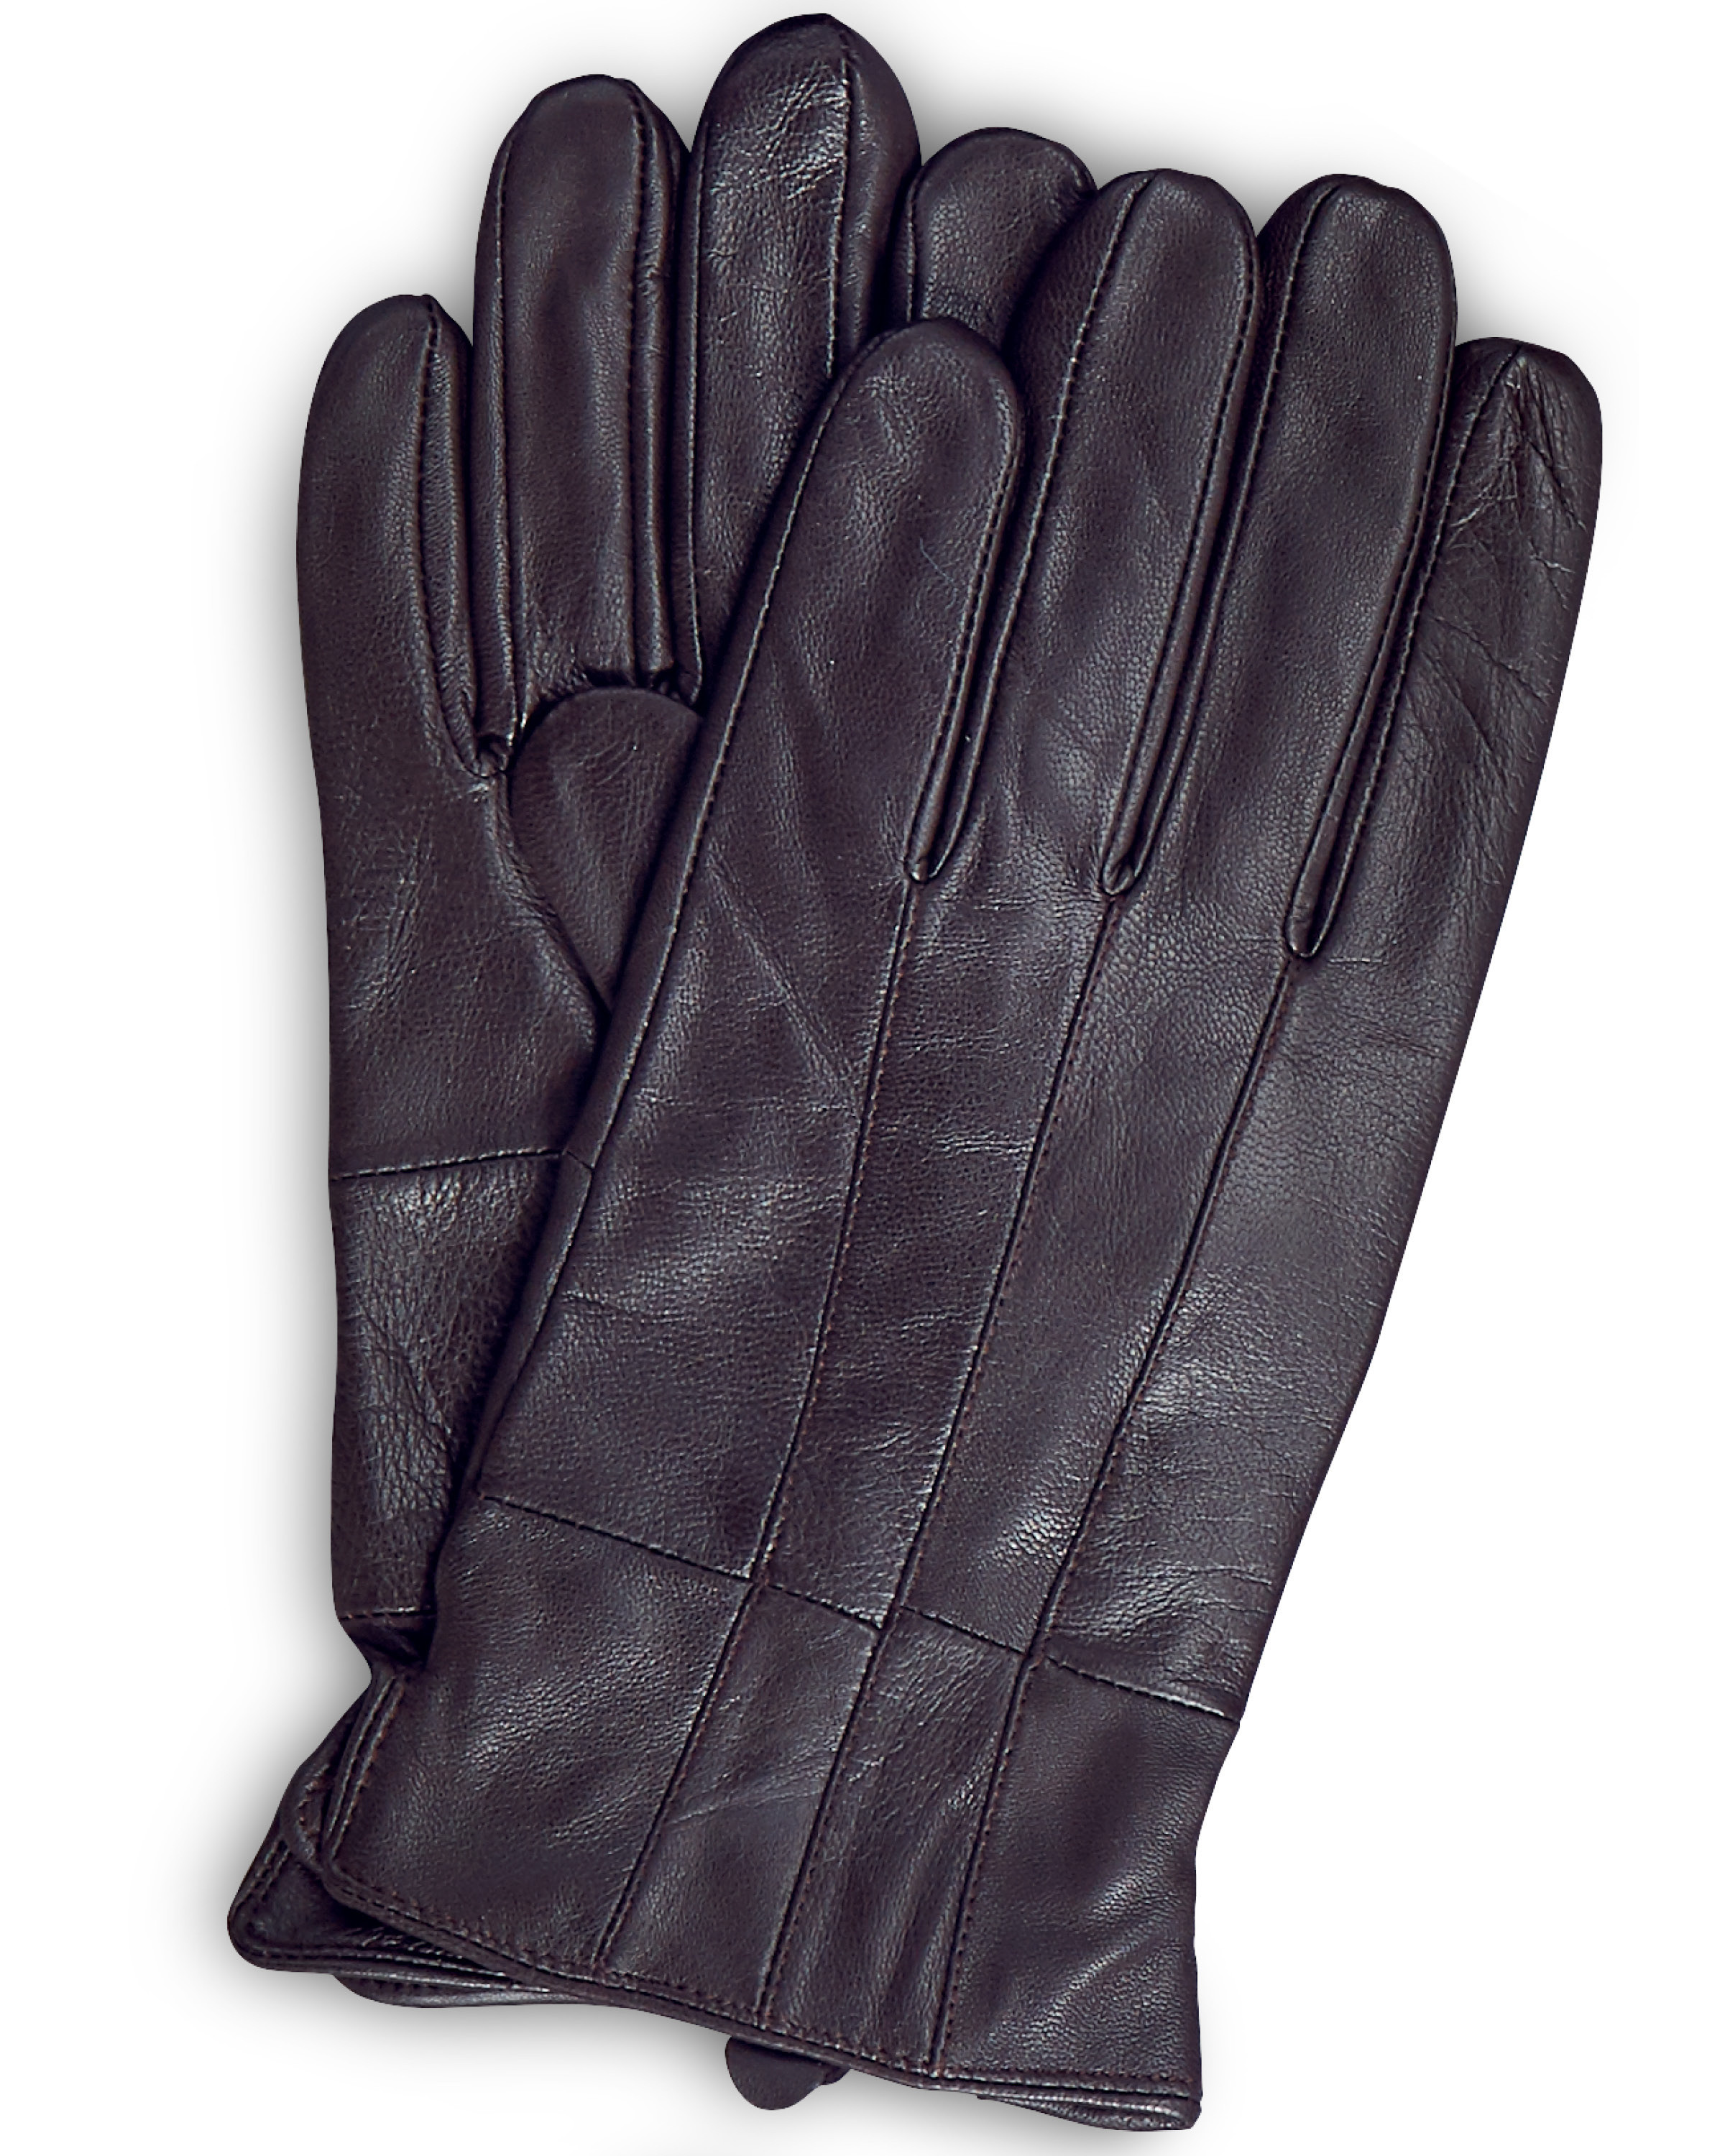 Ladies coloured leather gloves - Ladies Coloured Leather Gloves 15